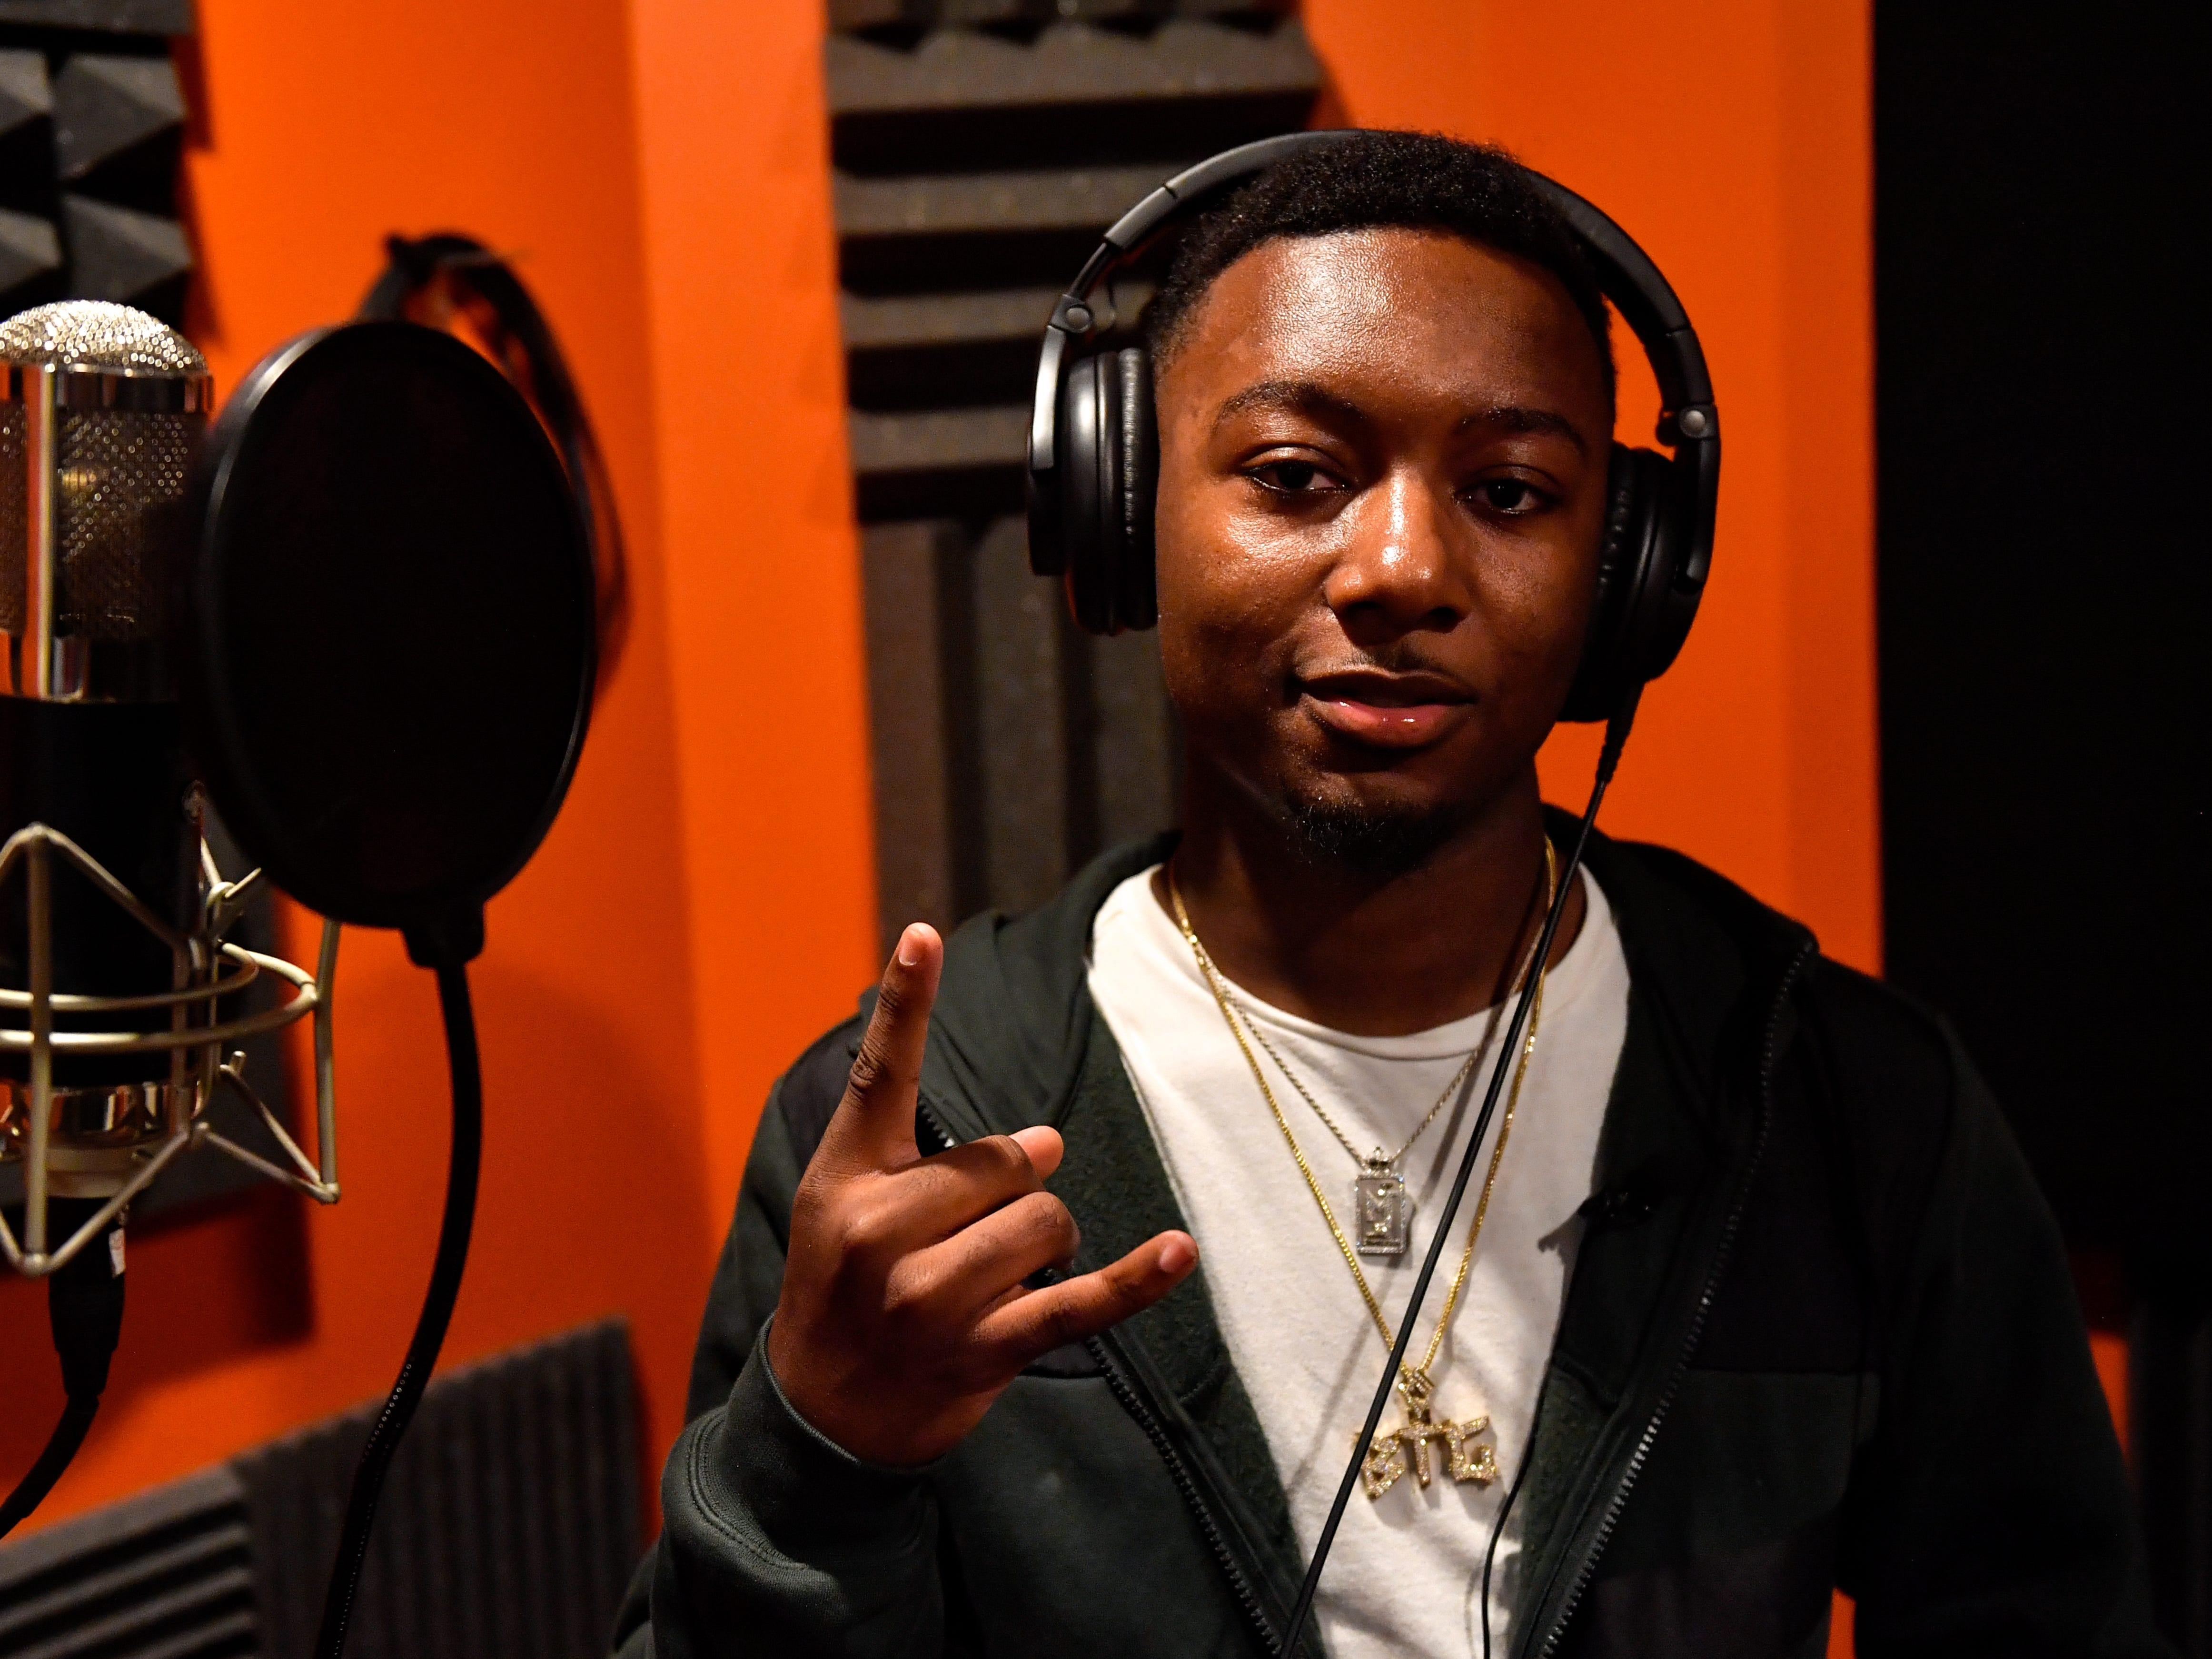 De'Andre Cox, aka BTG Dre, is a promising 17-year-old rapper from West Baltimore. He moved to York County for a better life and raps about his experiences and goals.